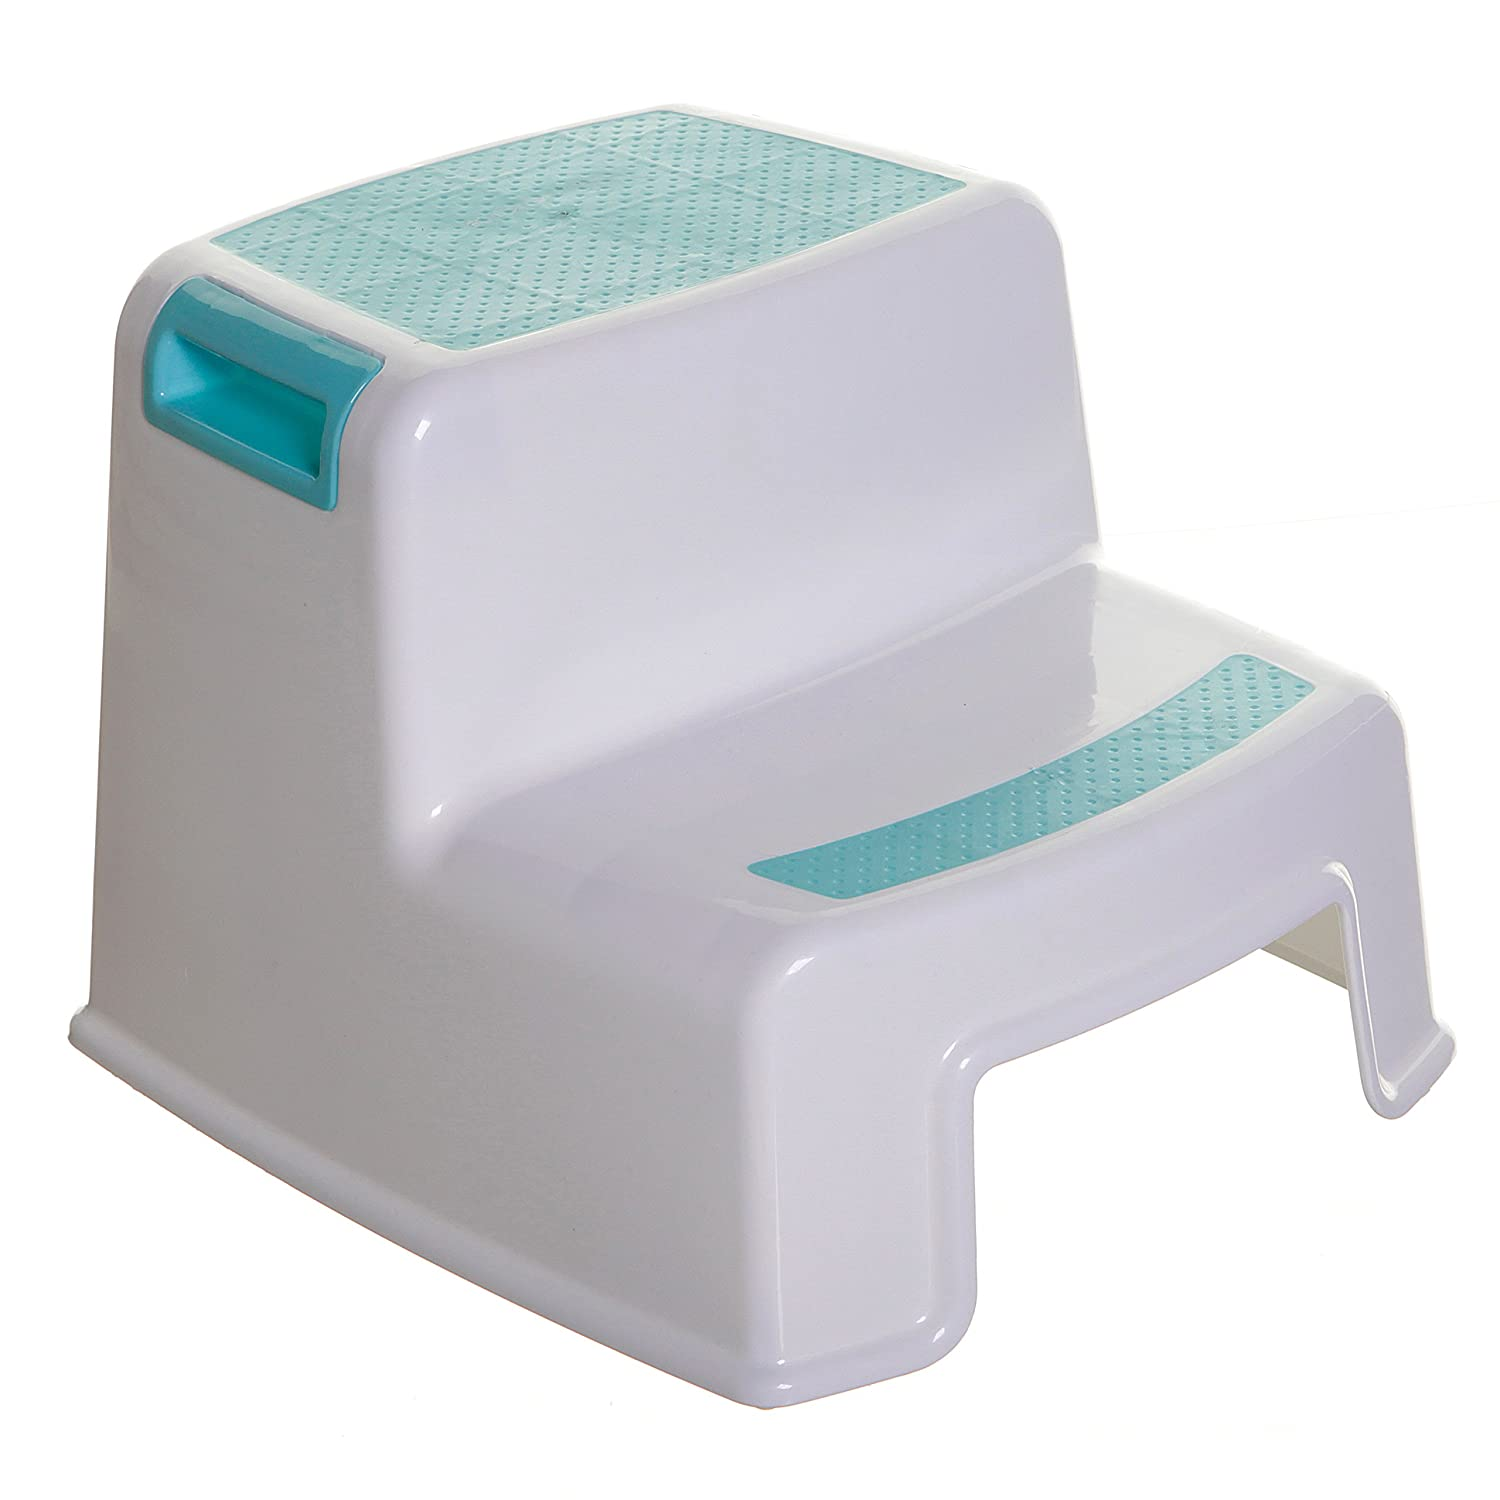 Dreambaby Two-Up Height Step Stool, White/Aqua F685